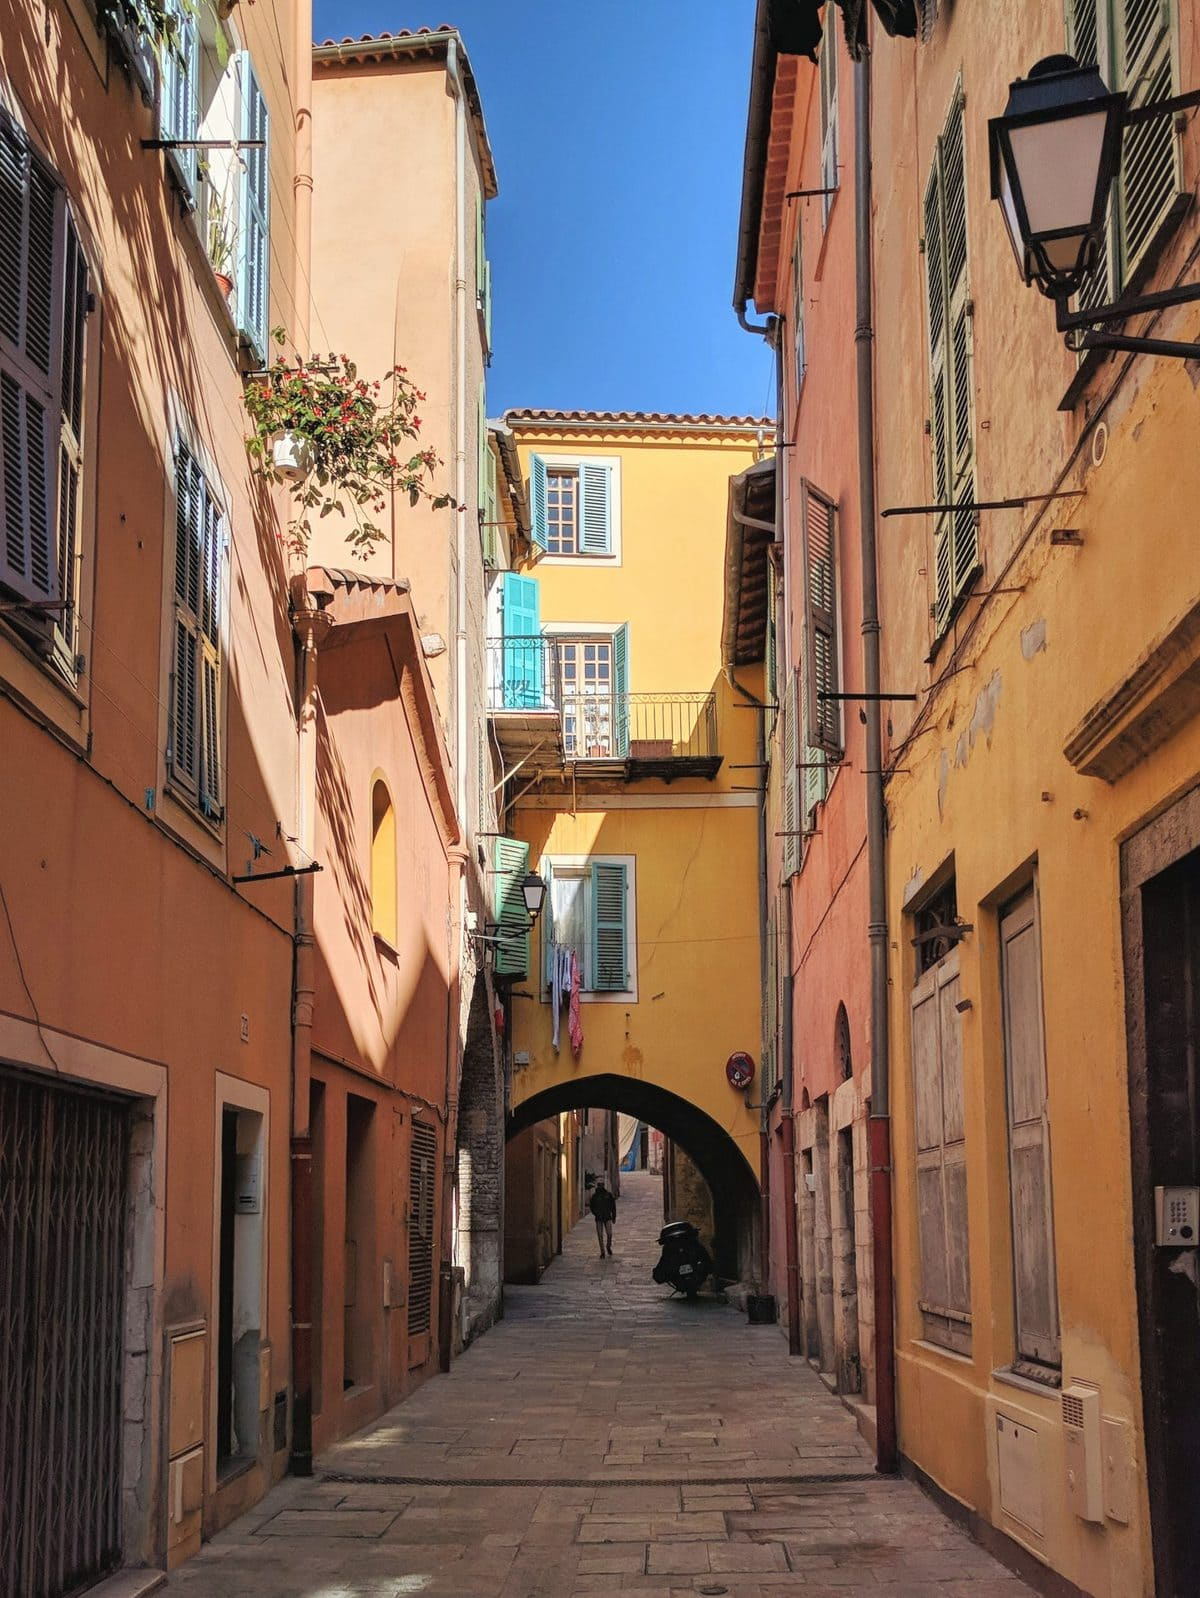 Colorful buildings in a quiet street in Villefranche-sur-Mer, France